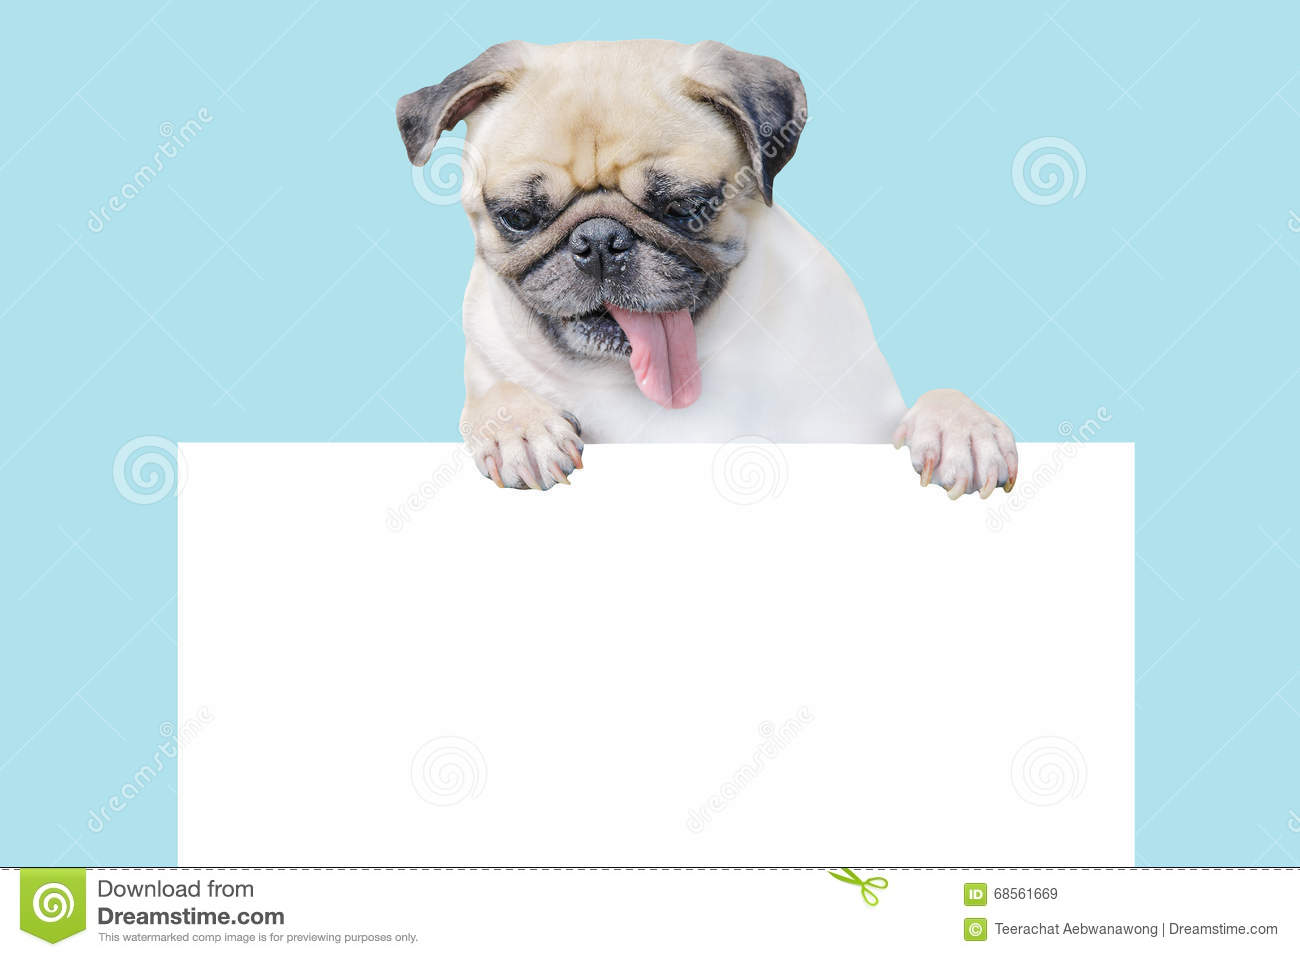 Cute puppy dog pug above banner look down with copy scape for label mockup template for gift certificate royalty free stock photo yelopaper Images